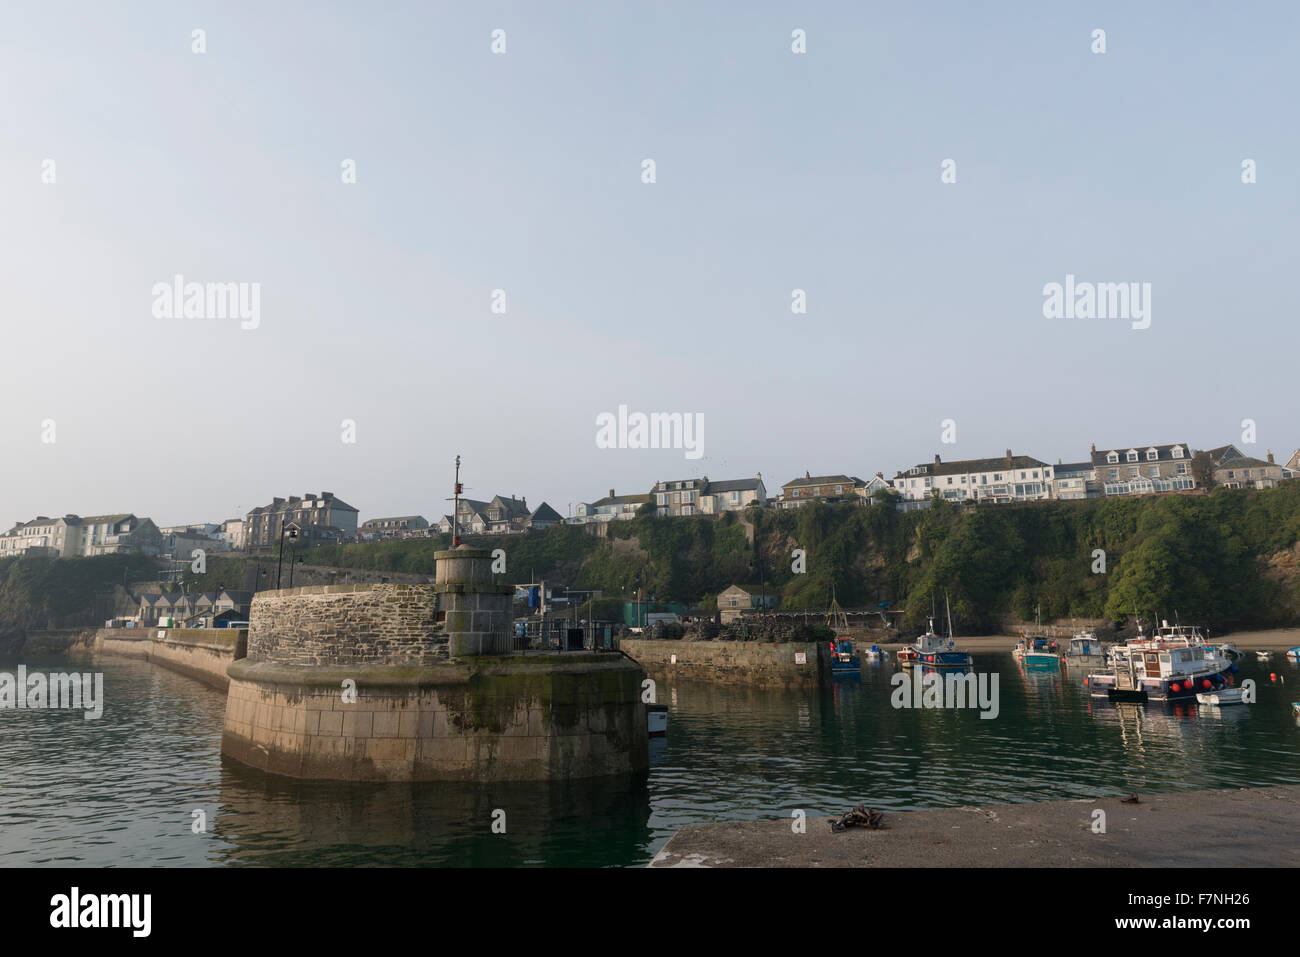 Early morning just after sunrise at Newquay, Harbour, Cornwall, UK on an october day. - Stock Image